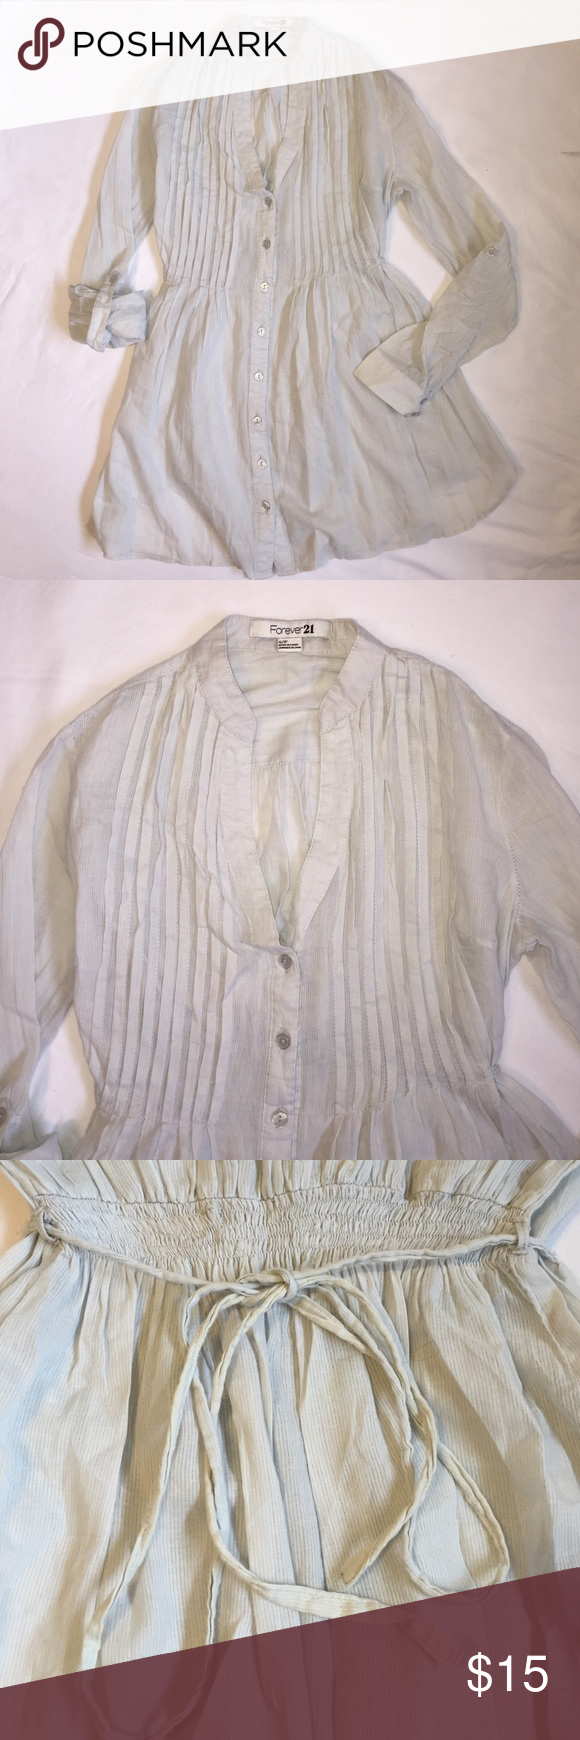 Forever 21 Light Pleated Blouse Size Small Tunic style, light and airy feel perfect for summer. Loose fitting style and features tie on sleeves so that they can be rolled up. Pastel blue/green color with very thin pinstripe. Pleated detail in the front. Ties at back. No rips, tears or stains besides a little pit of pulling from when you tie it in the back (see pictures). Please ask any questions you may have prior to buying. Thank you! Forever 21 Tops Blouses